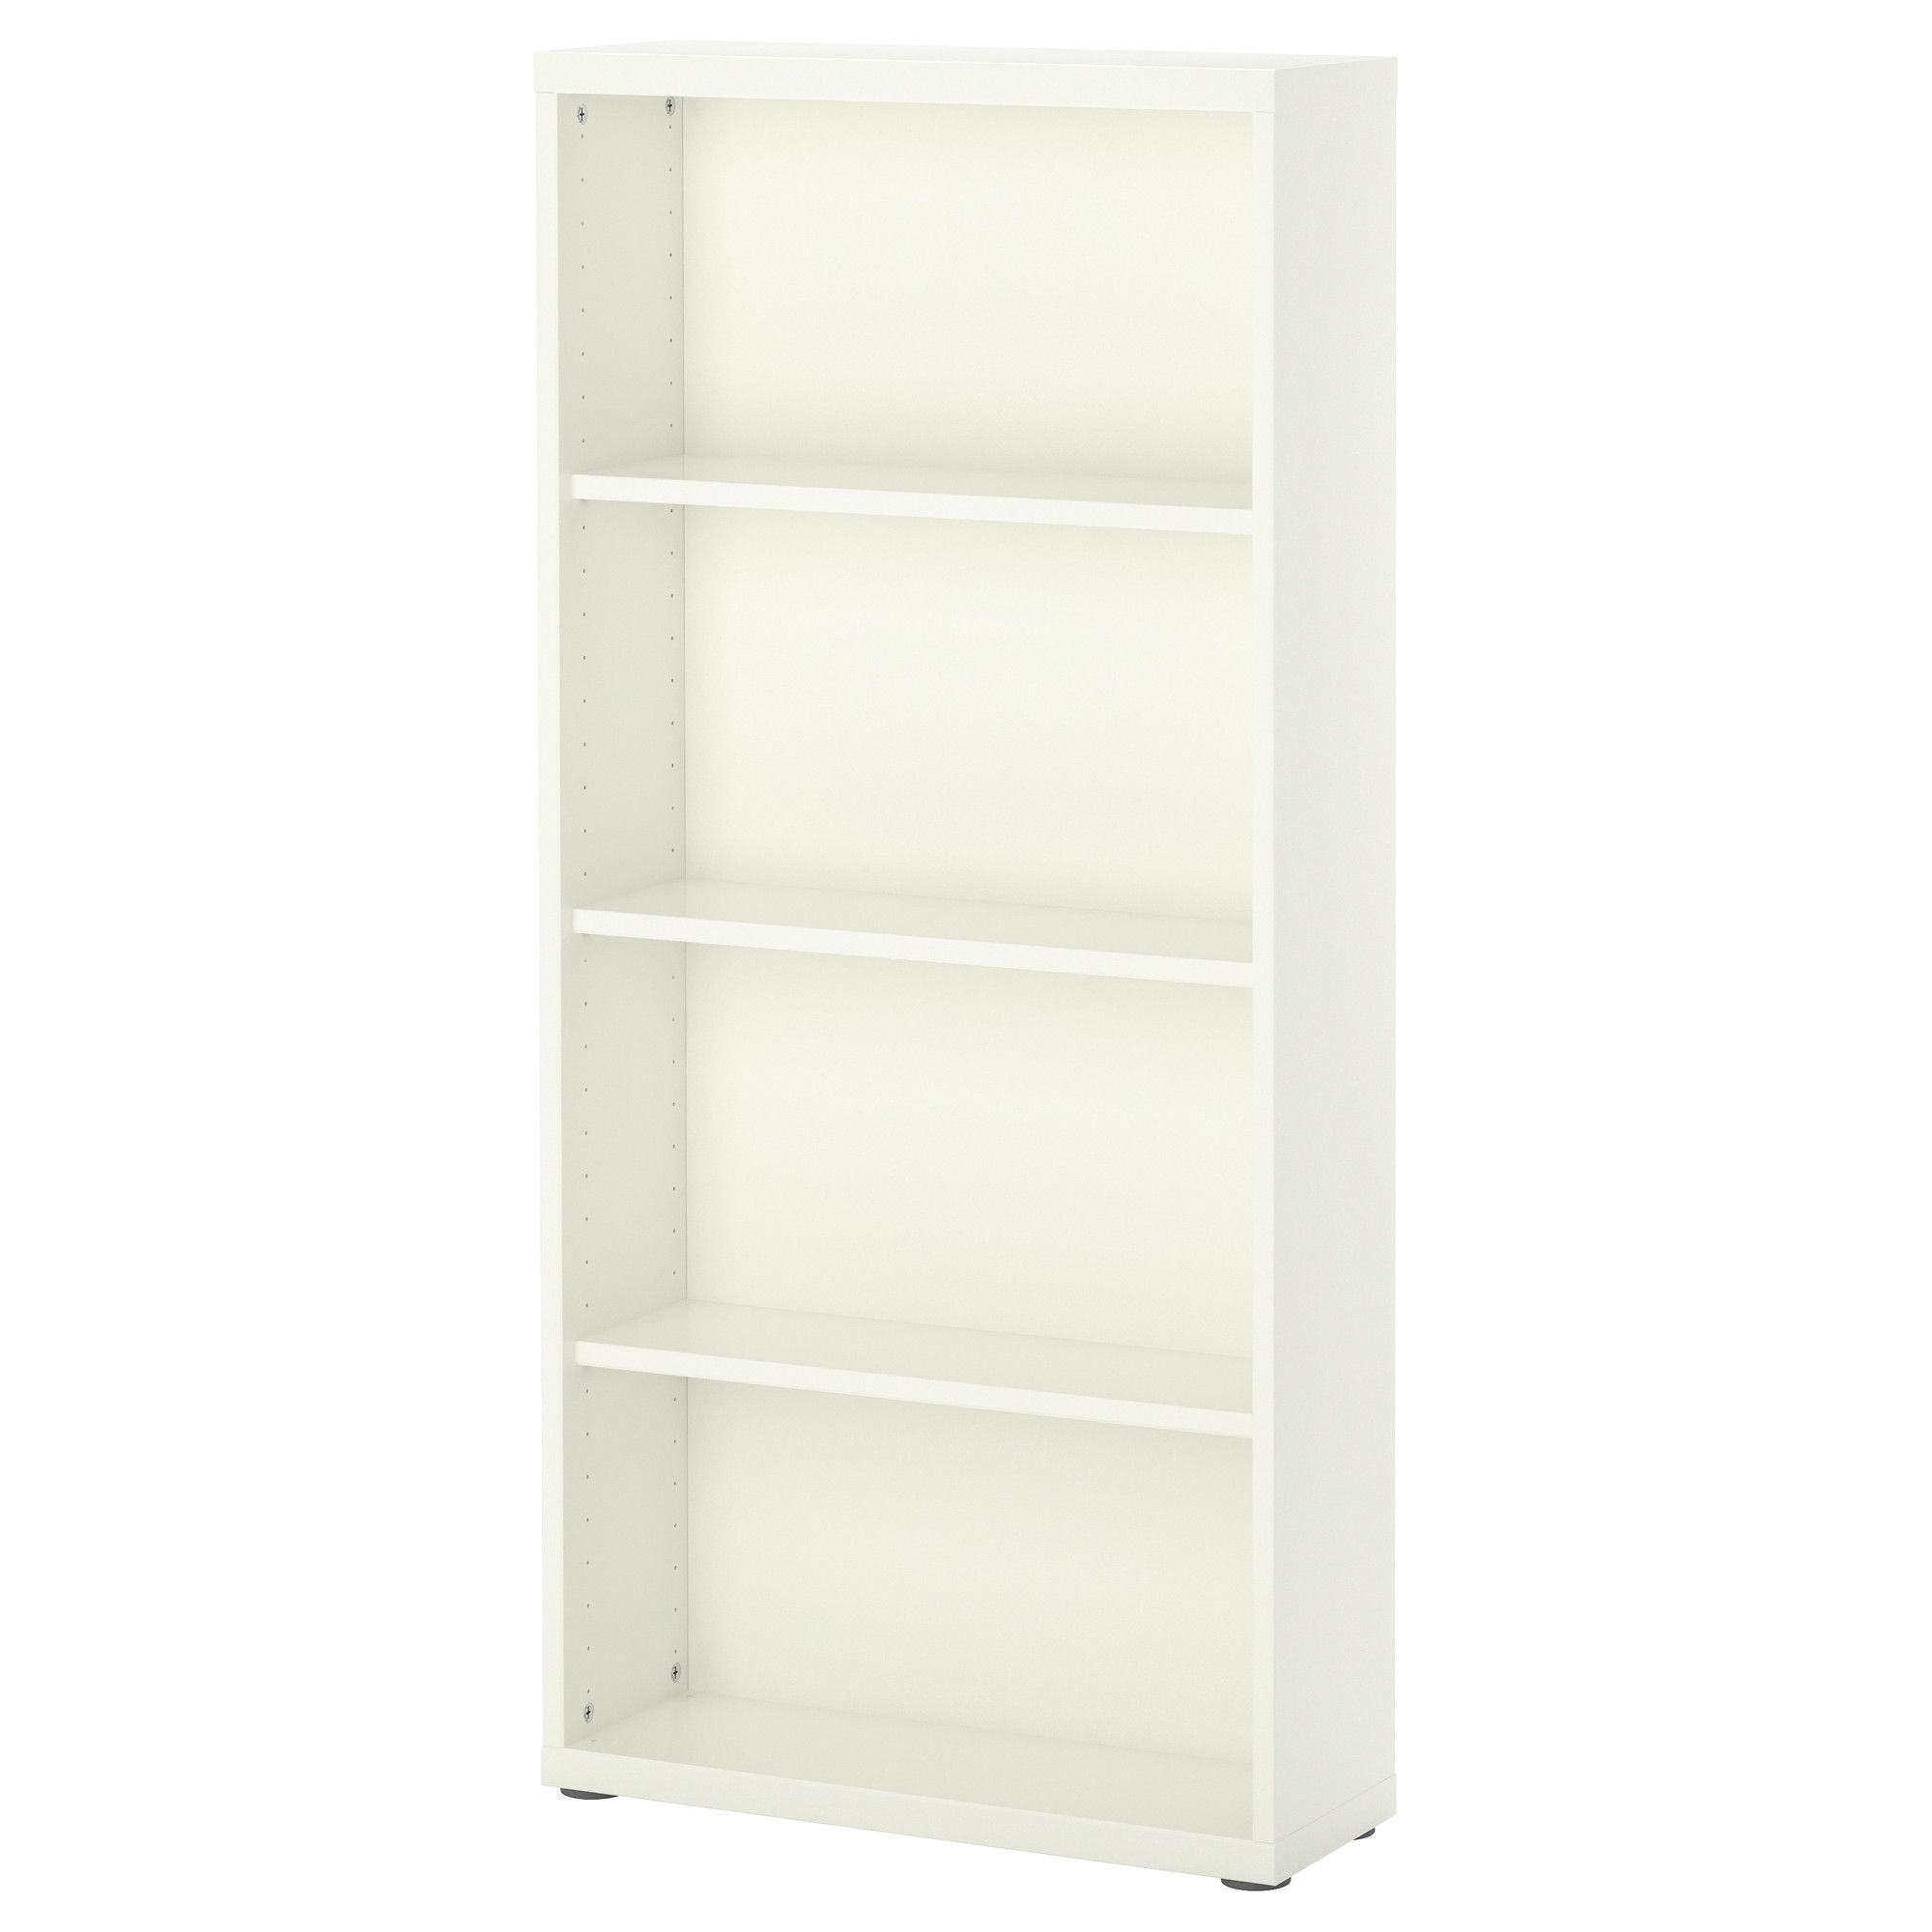 etagere casier ikea free with etagere casier ikea best casier bouteille vin ikea galerie avec. Black Bedroom Furniture Sets. Home Design Ideas